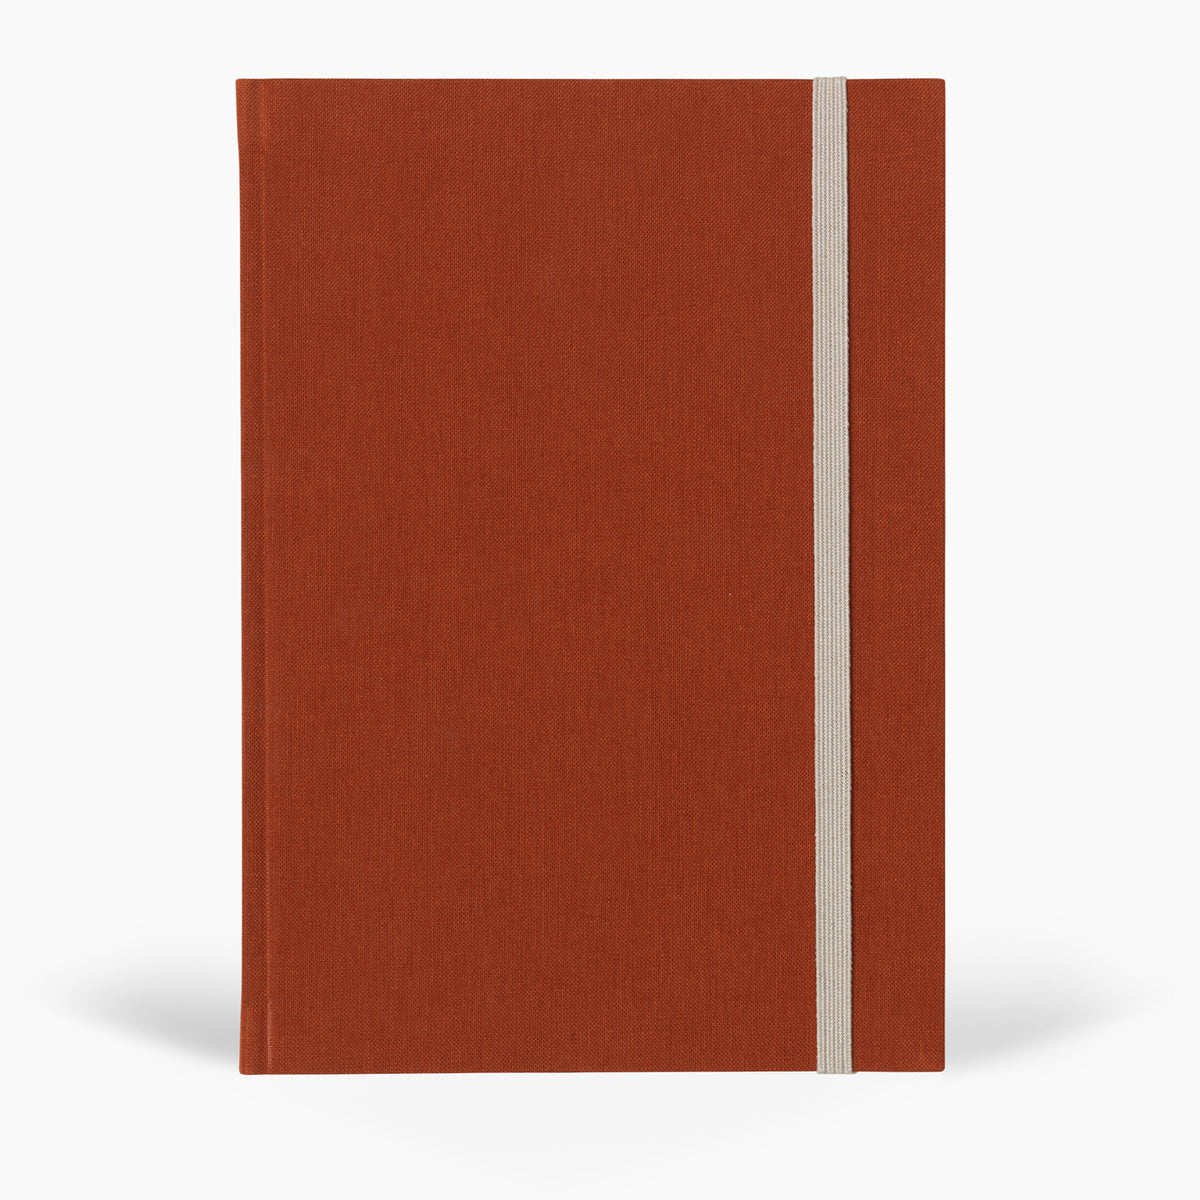 NOTEM Bea Notebook, Medium - Dark Sienna - NOTEM studio